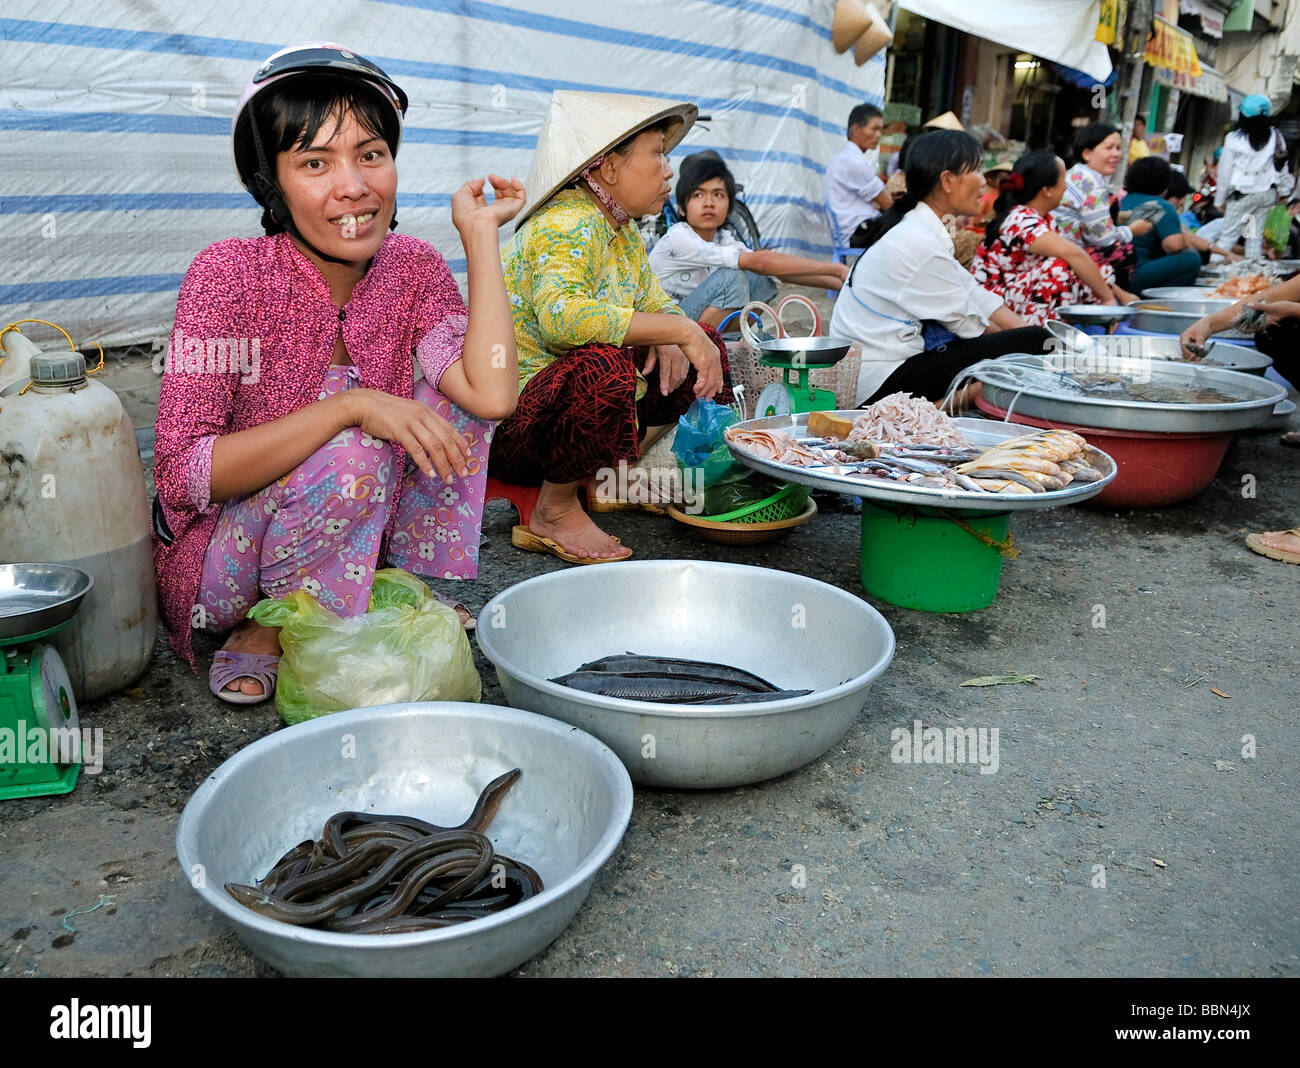 Women selling their goods, live eels, squid, dried fish, fish market, Mekong Delta, Vietnam, Asia - Stock Image